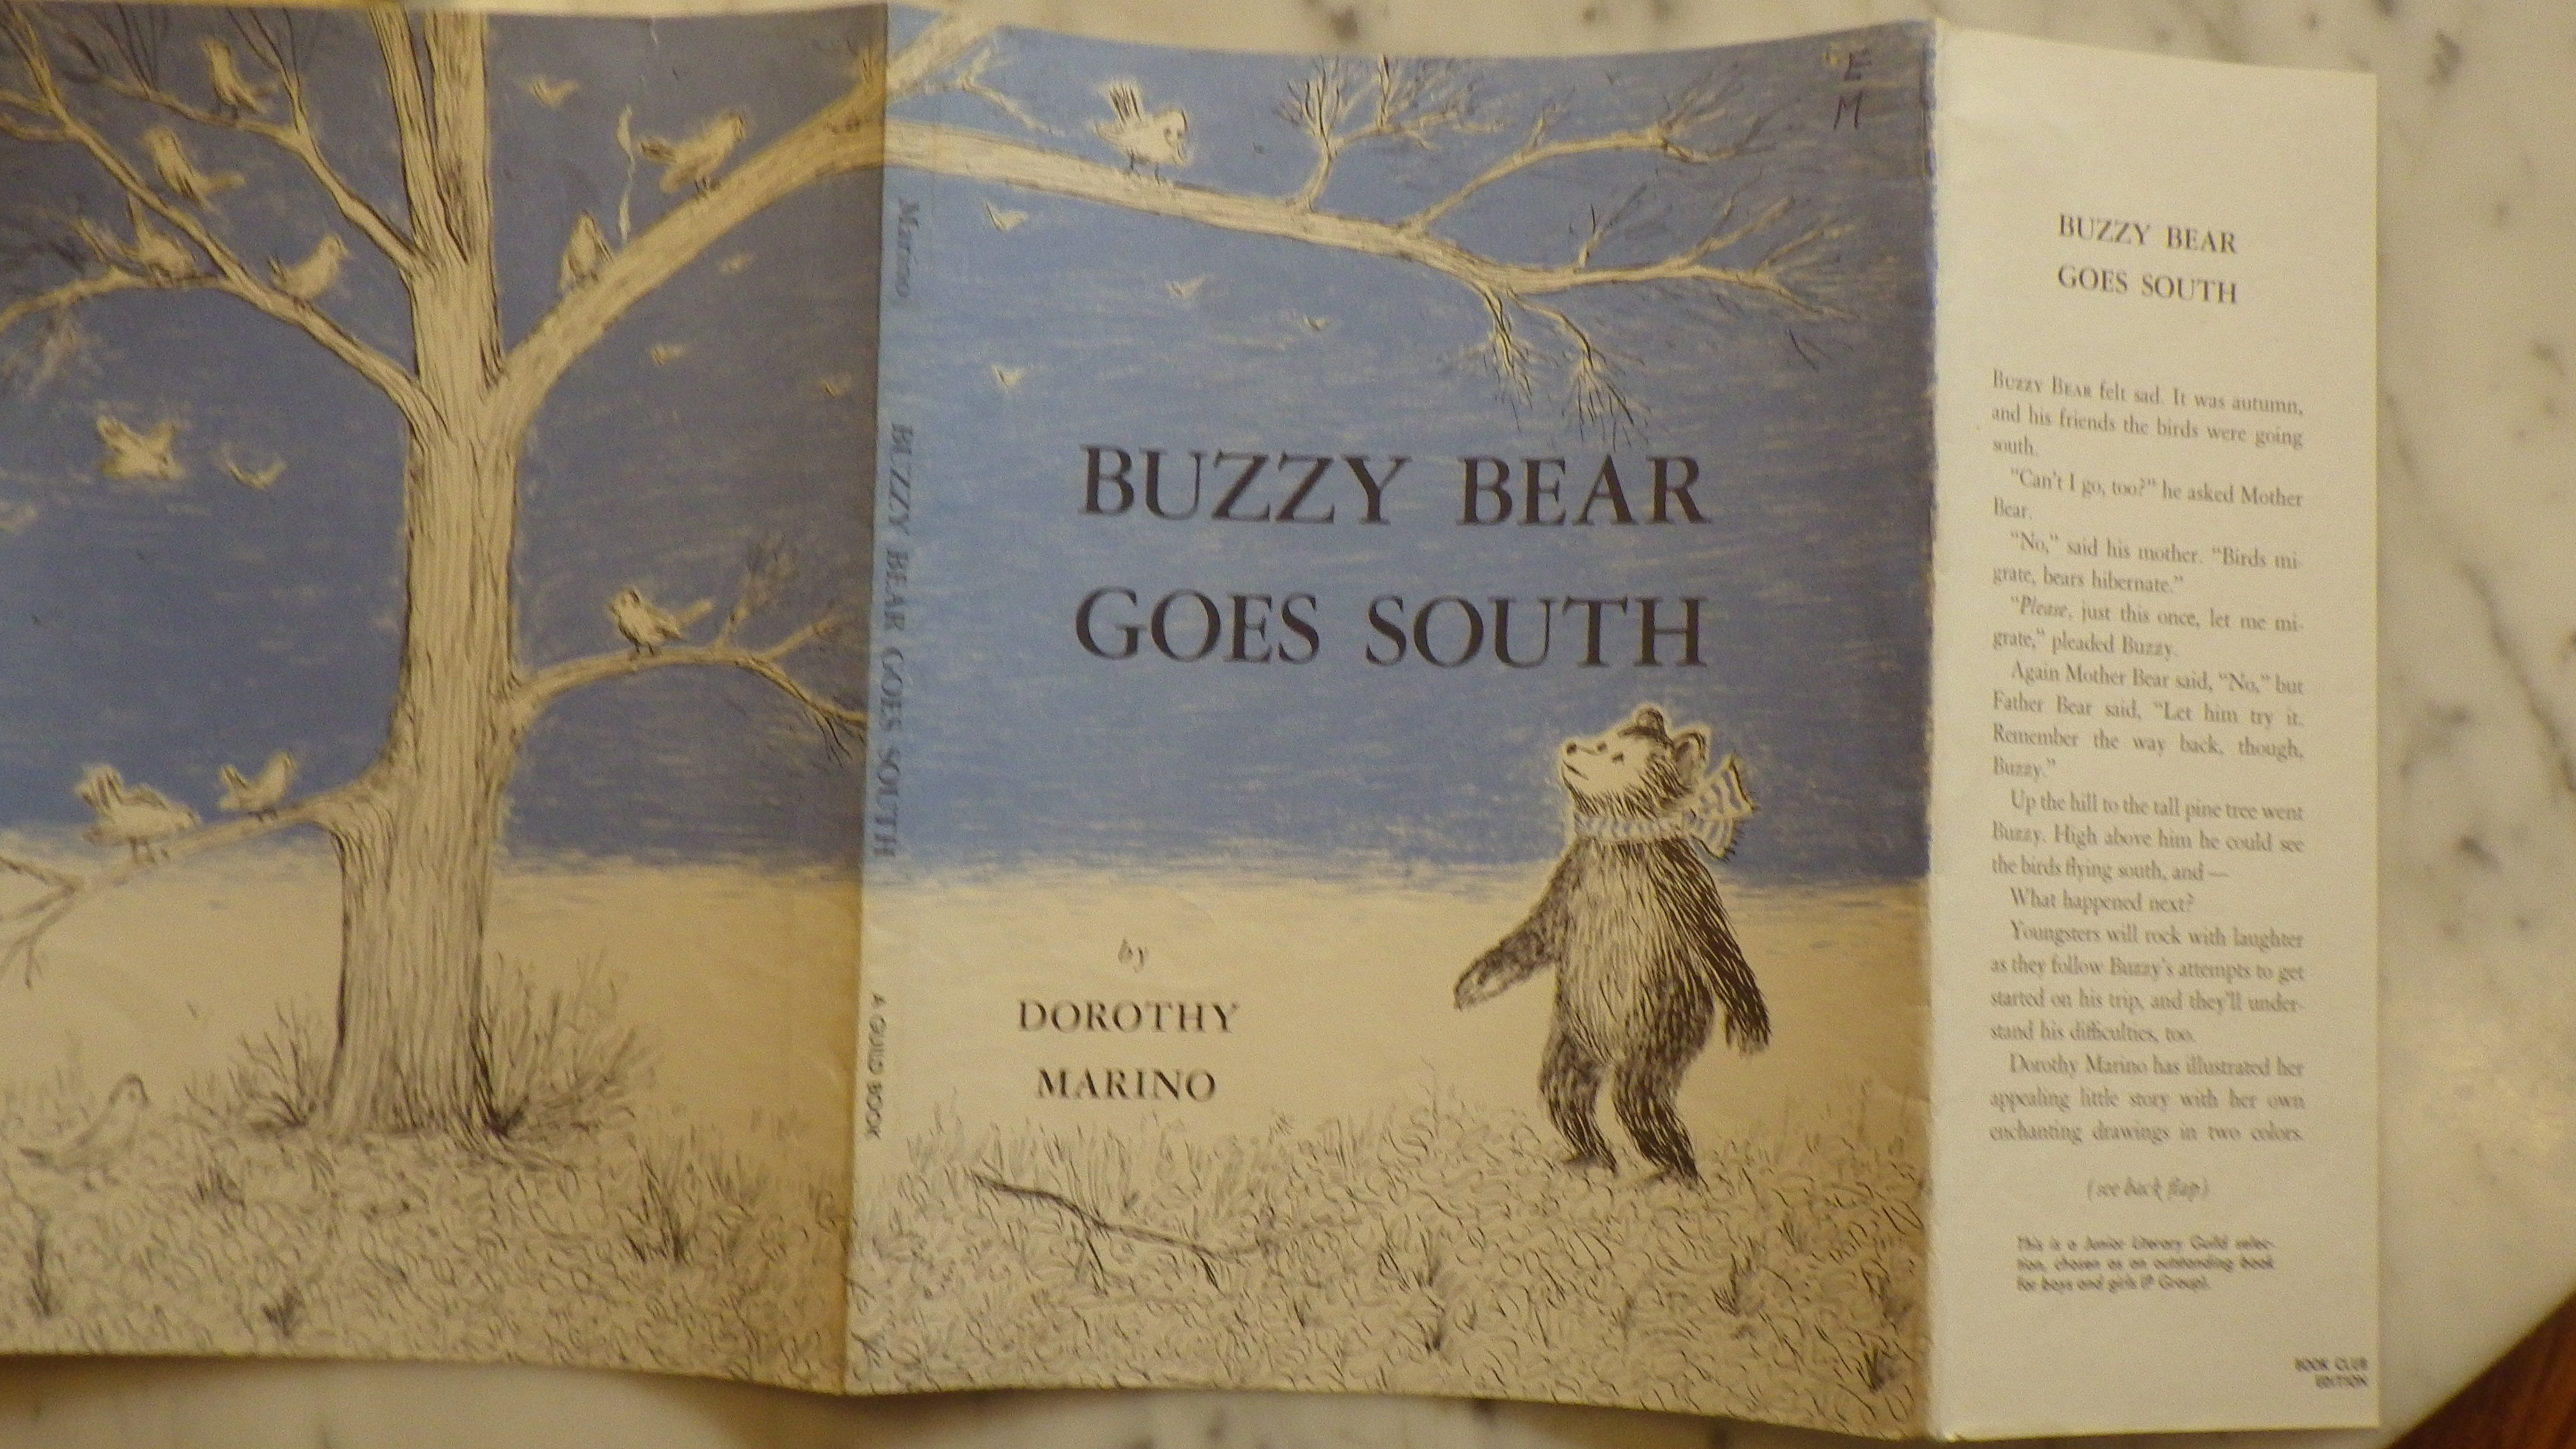 Buzzy Bear Goes South, by Dorothy Marino, in Dust Jacket , He felt sad, It  was autumn & his friends the birds were going South, His mother said Birds